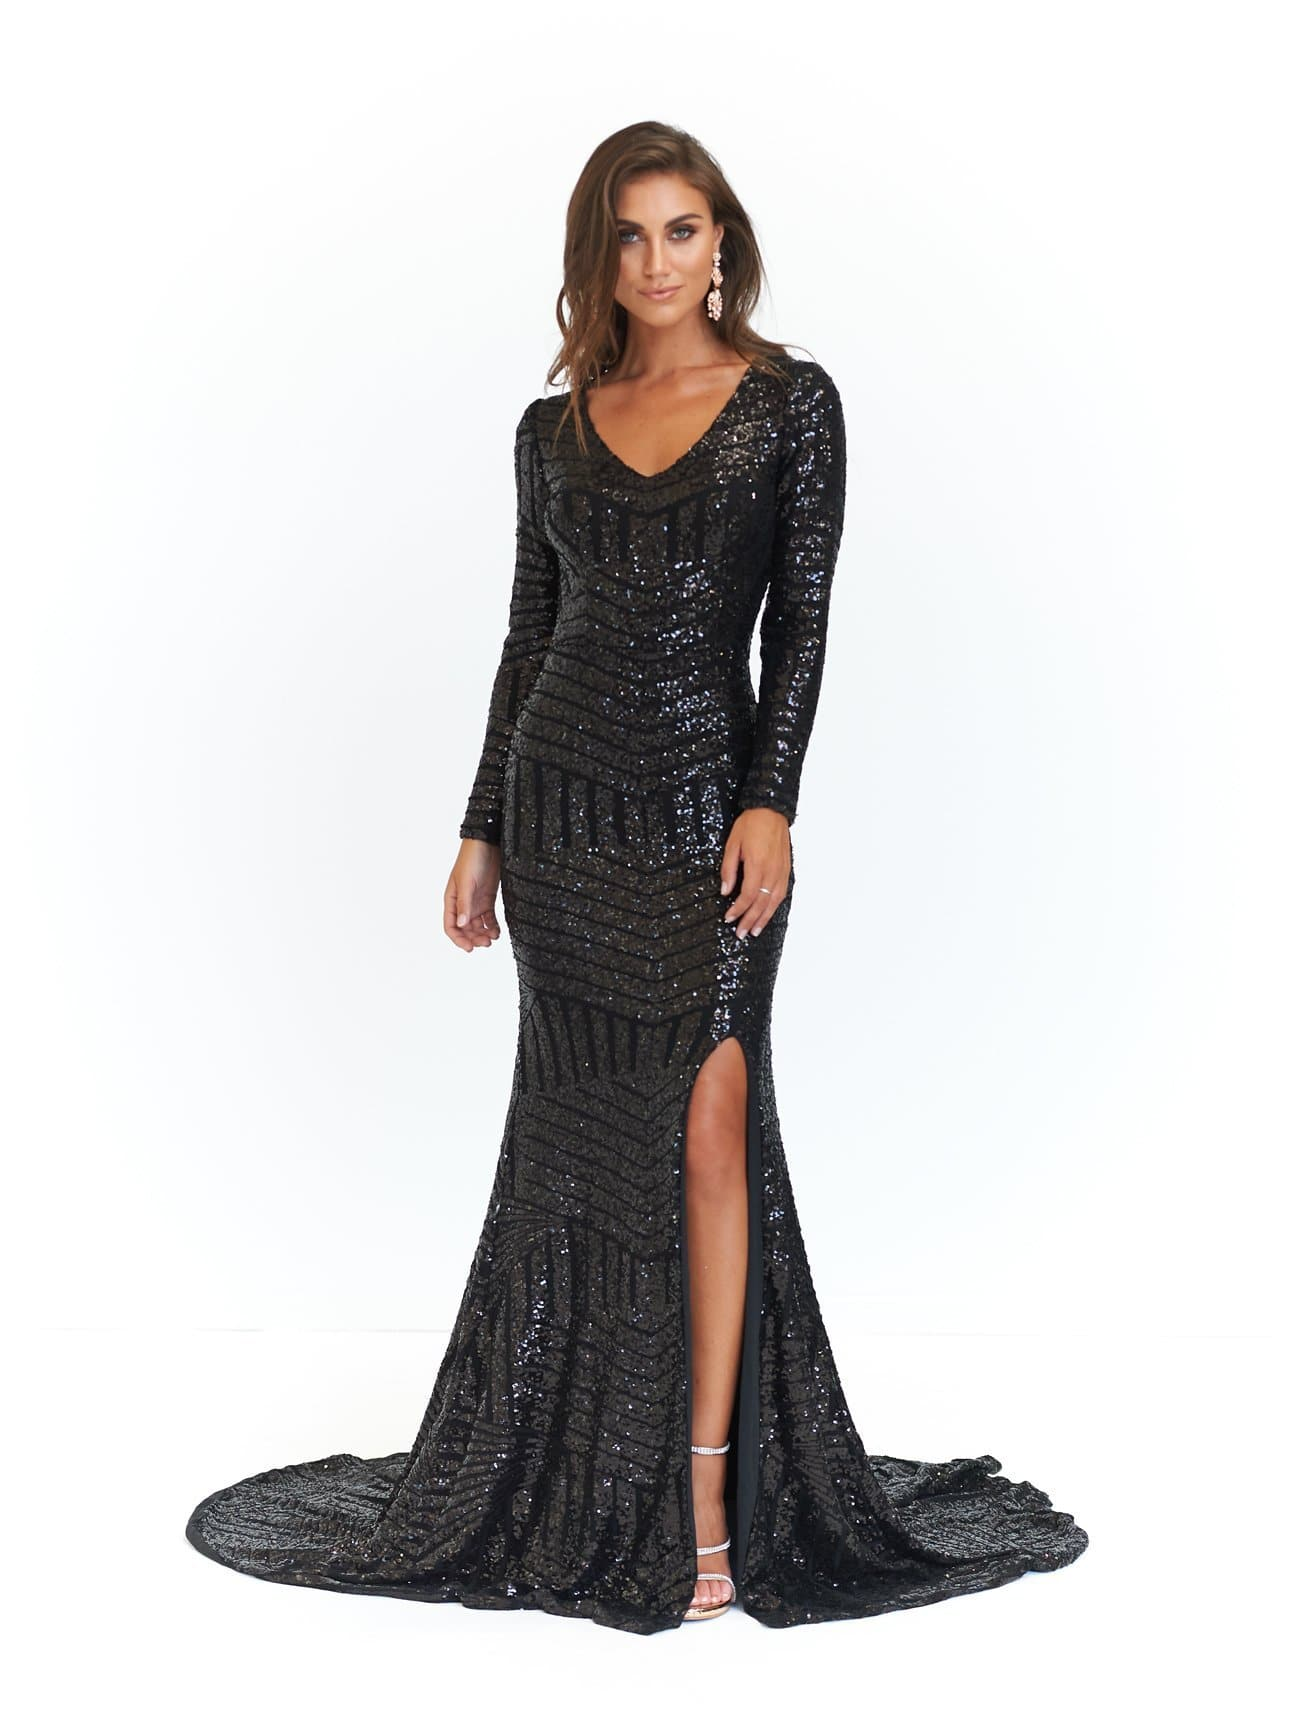 Kaya Formal Dress - Black Sequins Long Sleeve Maxi Gown Side Split